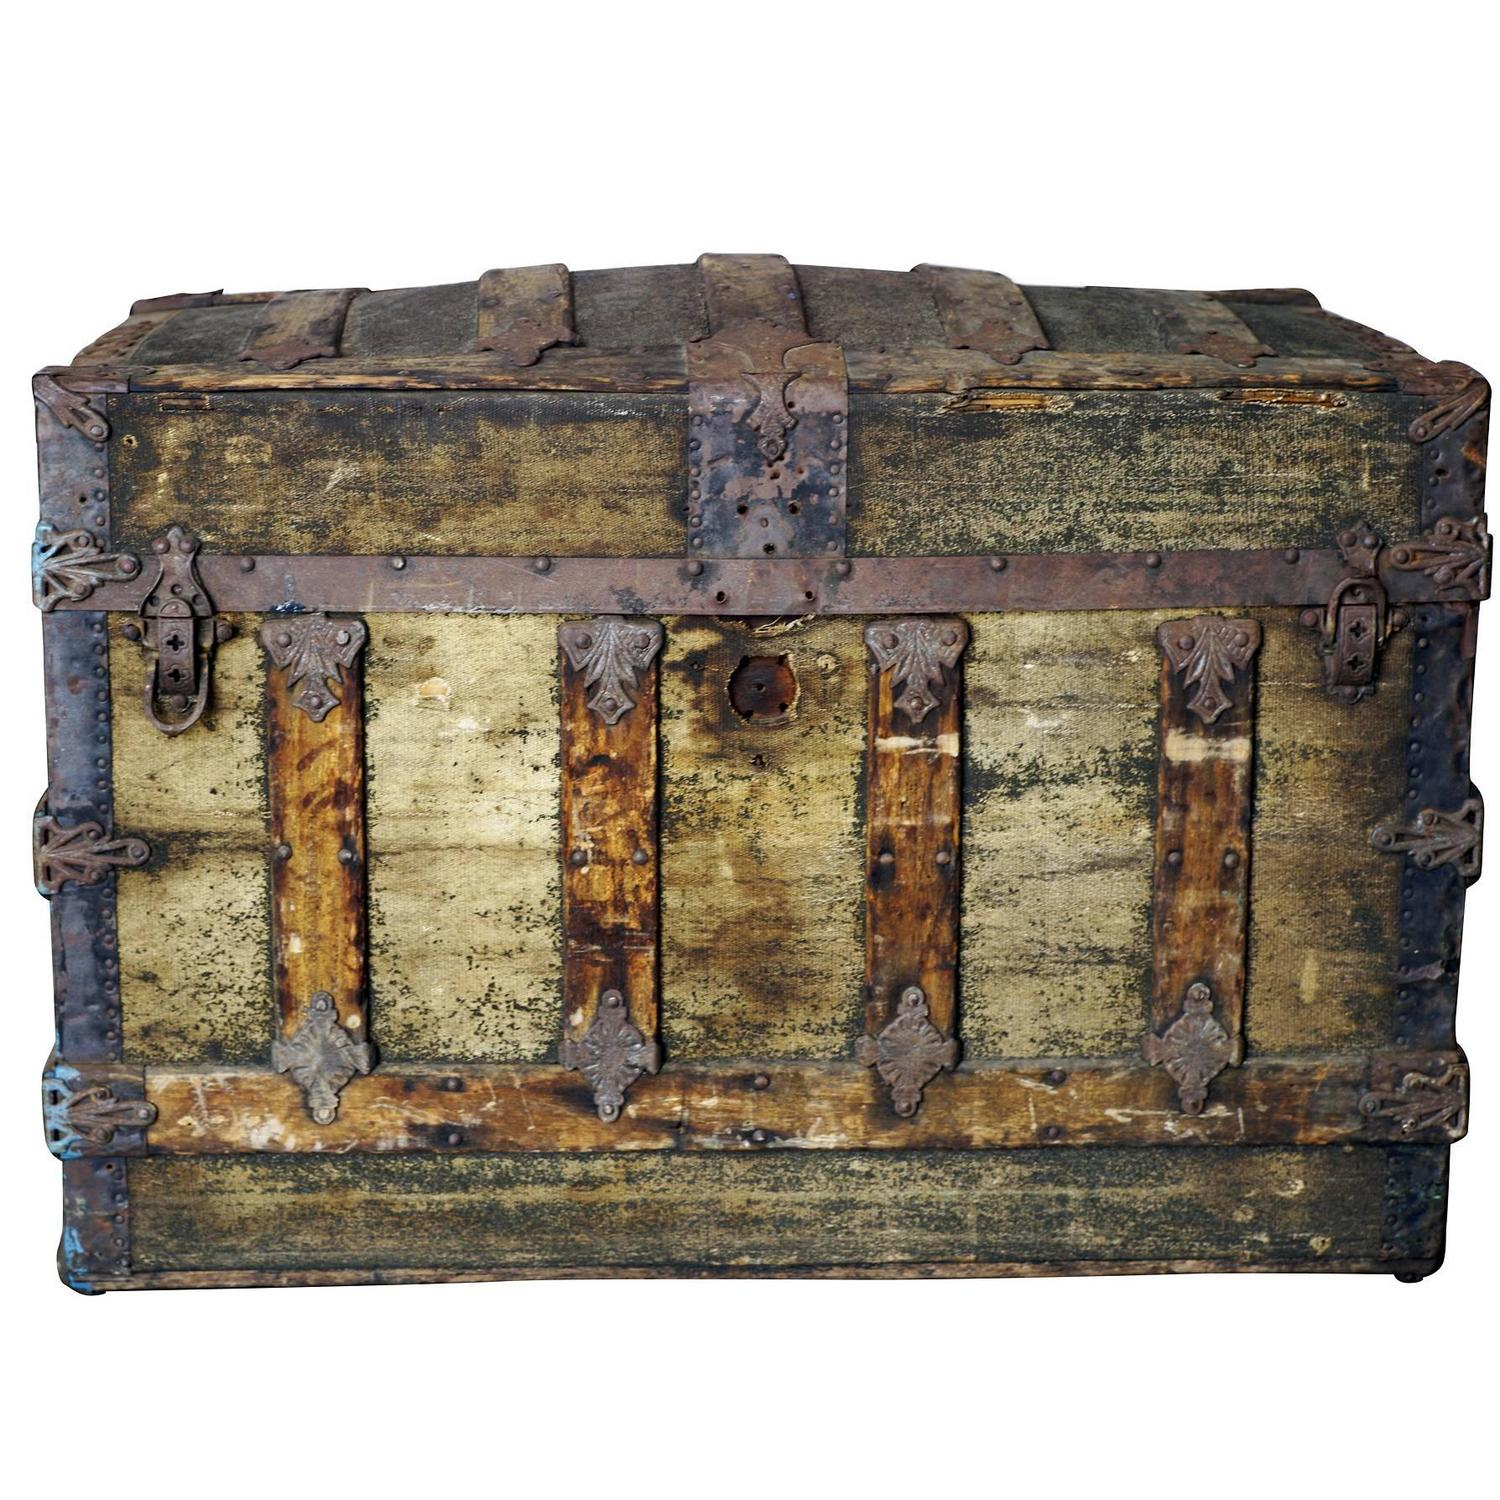 Steamer Trunk Furniture Rustic Victorian Dome Top Saratoga Steamer Trunk Saturday Sale